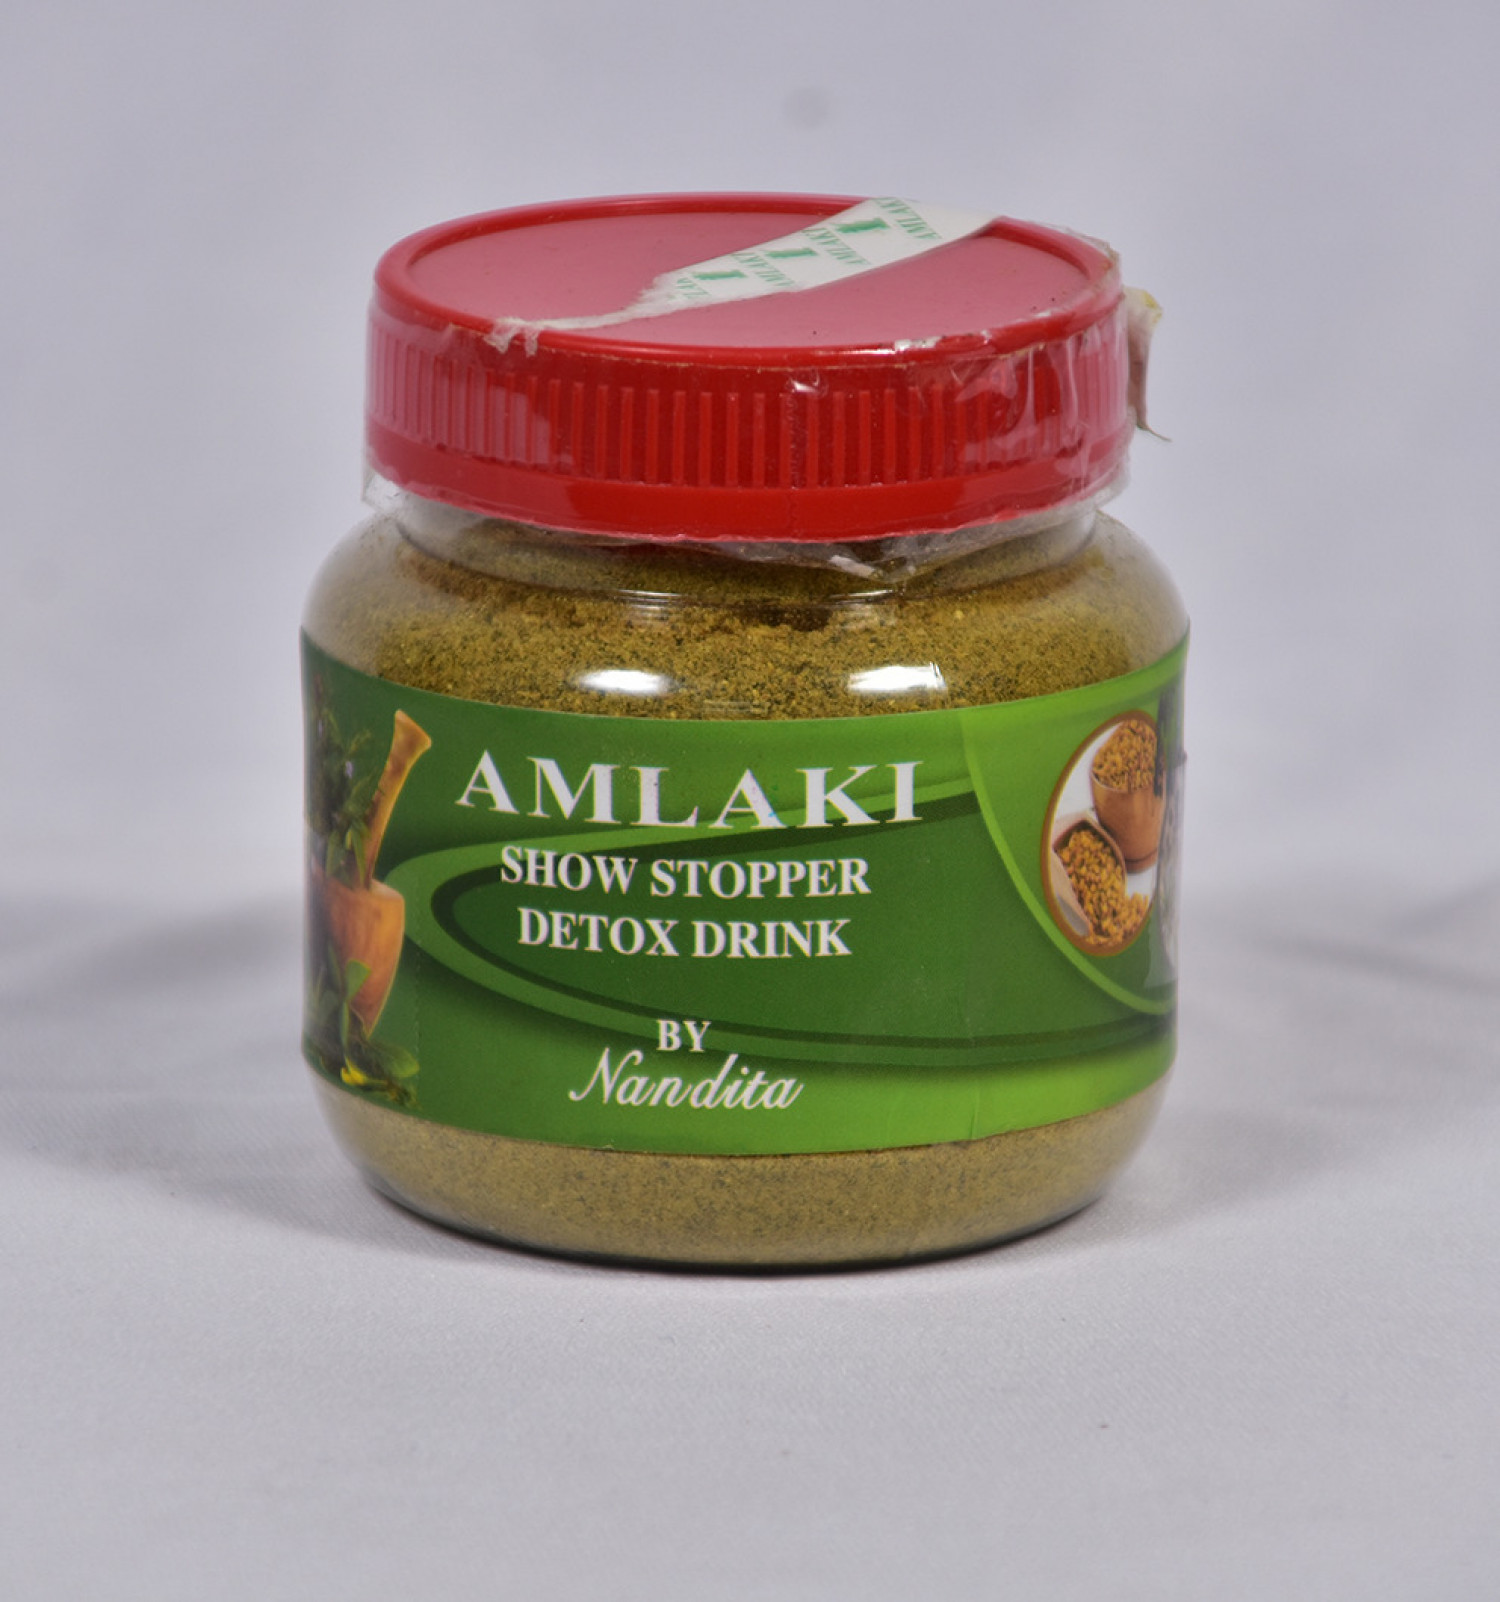 Amlaki Show Stopper Detox Drink For Weight Loss Infographic